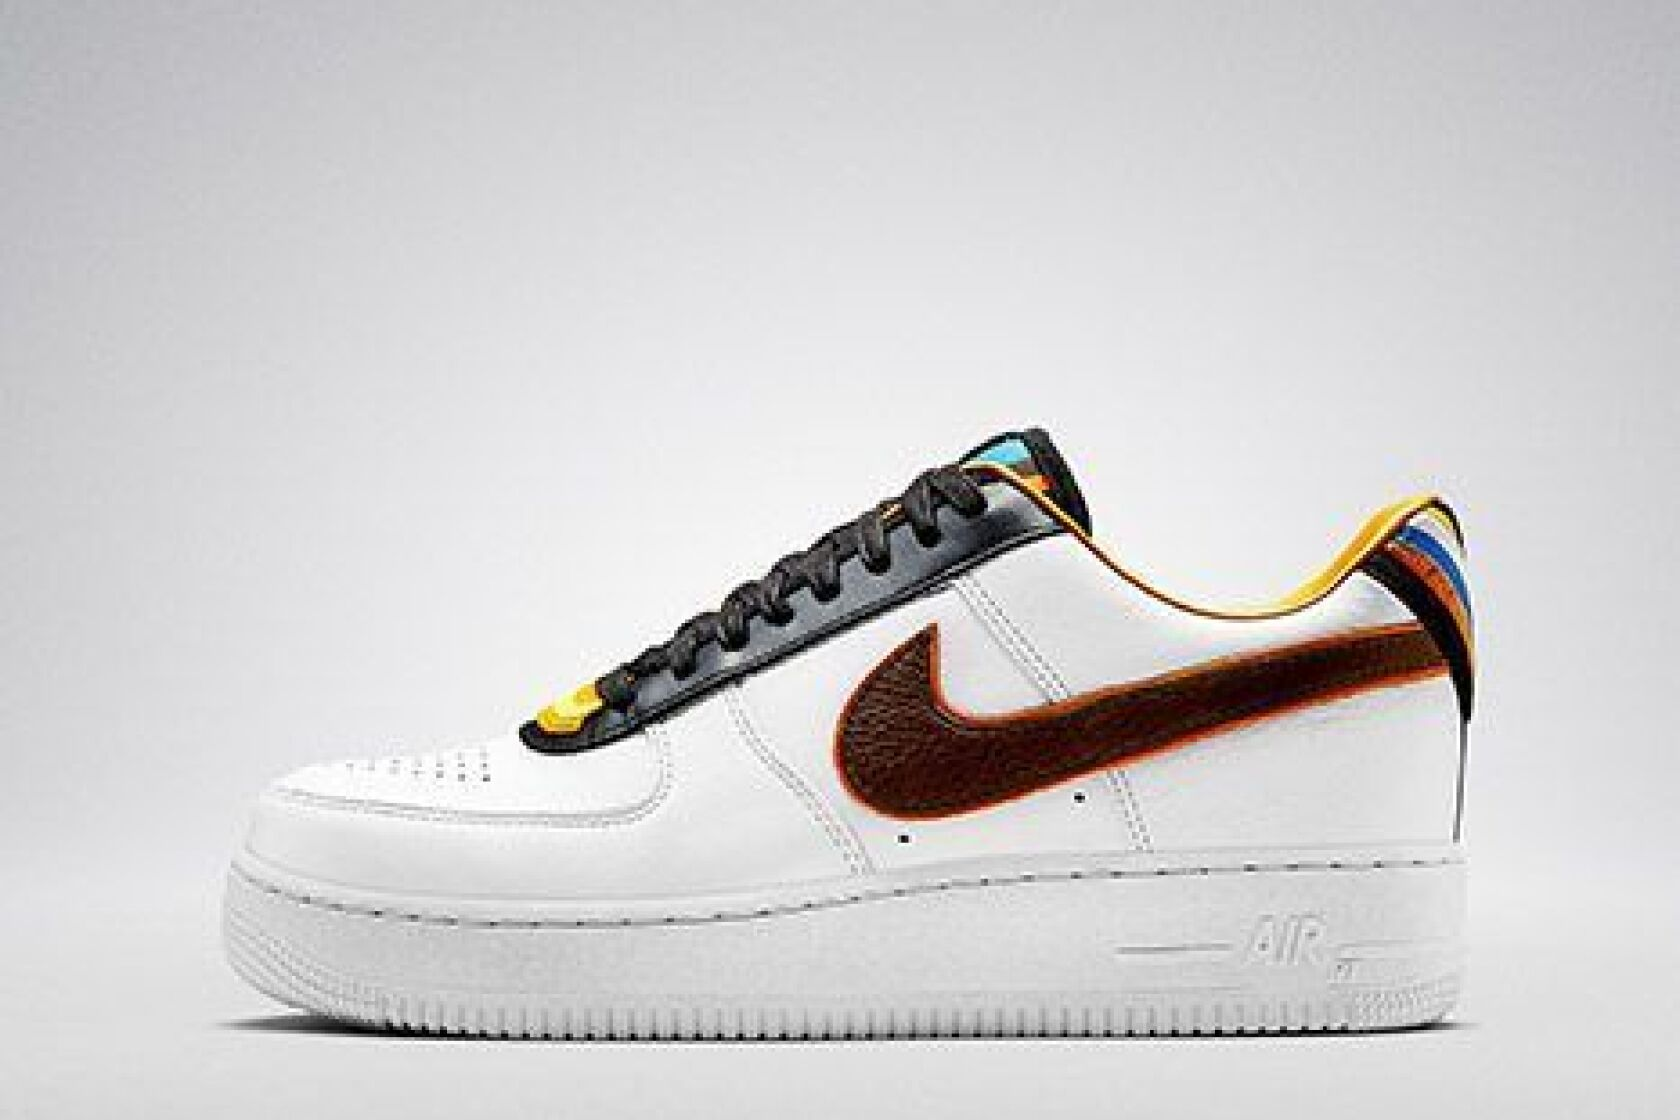 Nike X Riccardo Tisci sneaker collaboration hits e tail